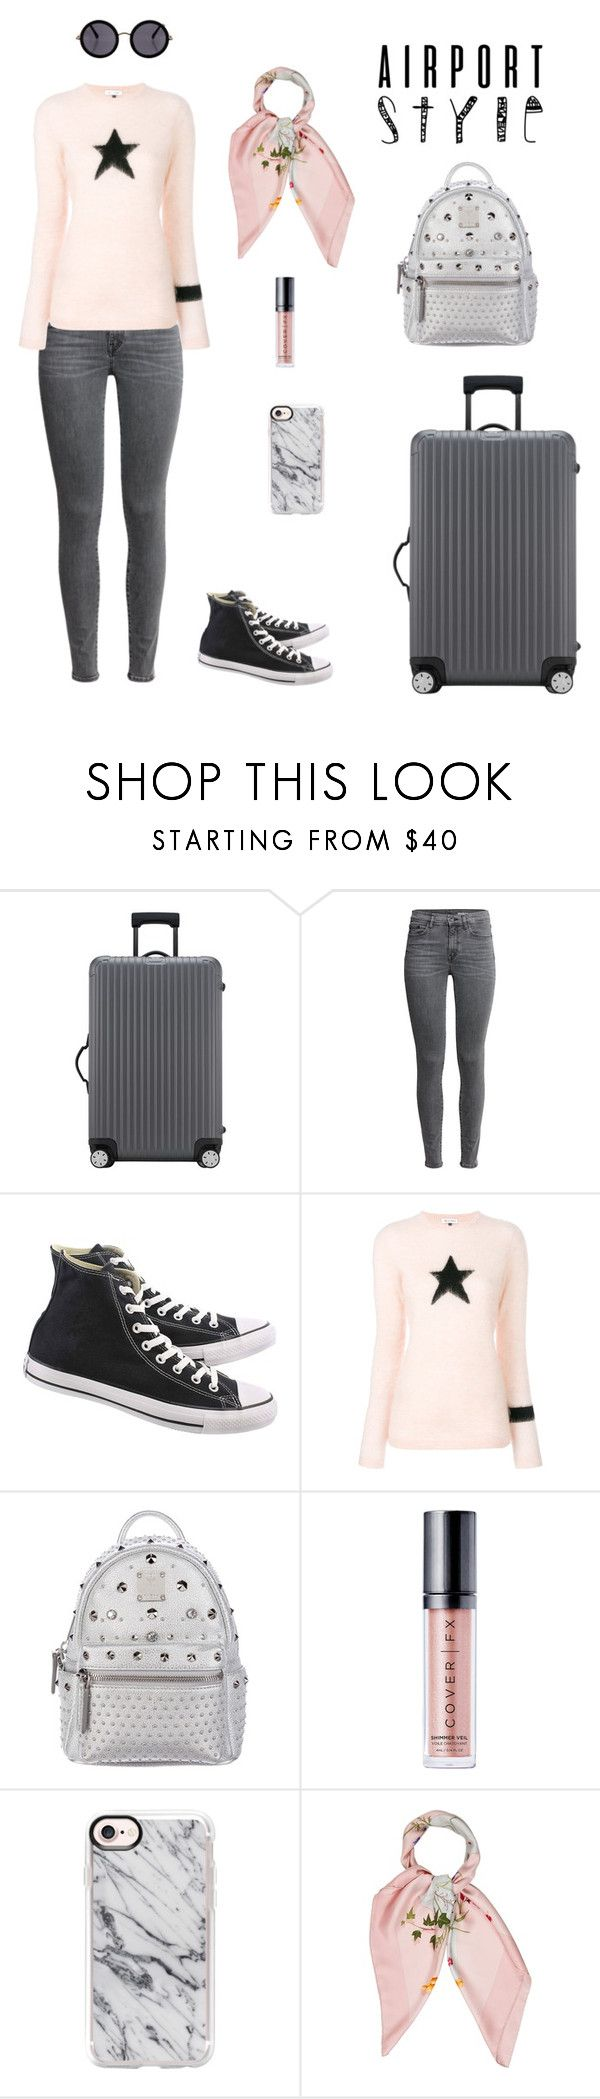 """Untitled #481"" by jesica-d-psc ❤ liked on Polyvore featuring Rimowa, Converse, Bella Freud, MCM, Cover FX, Casetify, Hermès, The Row and airportstyle"